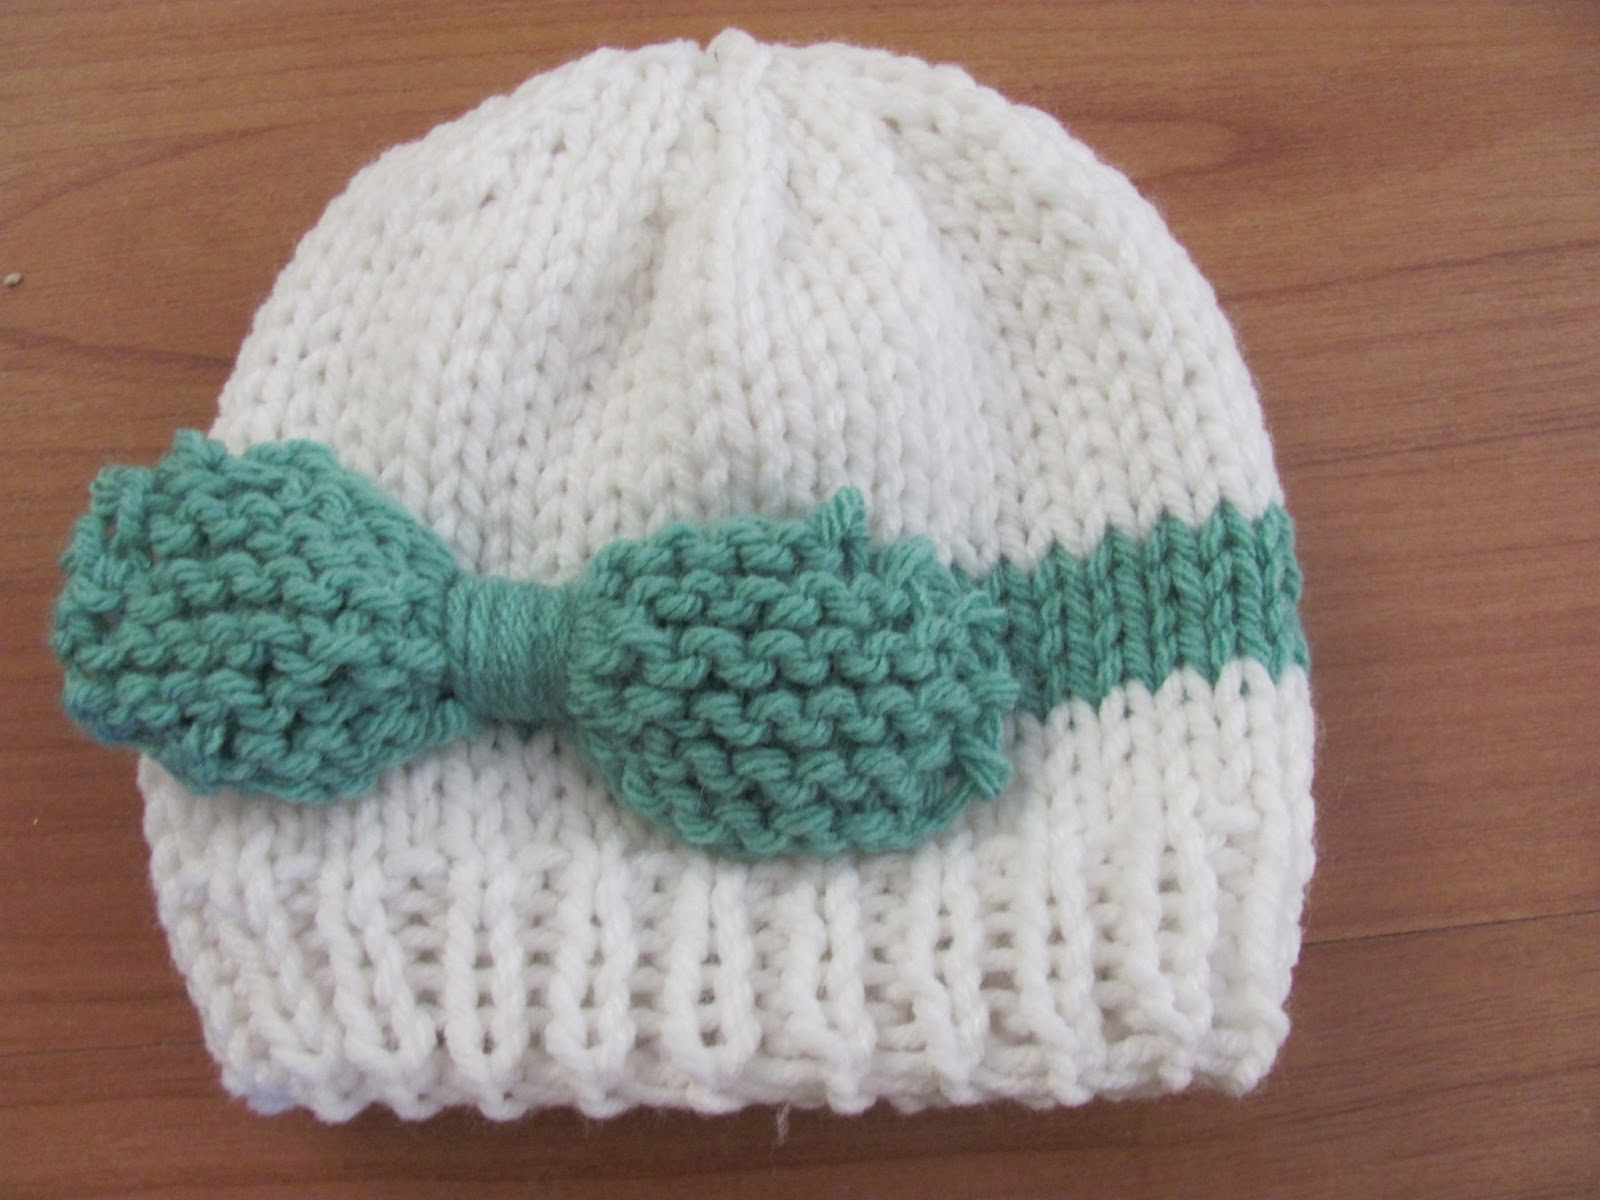 Knitted Infant Hat Patterns : Twenty Something Granny: Knitted Baby Bow Hat